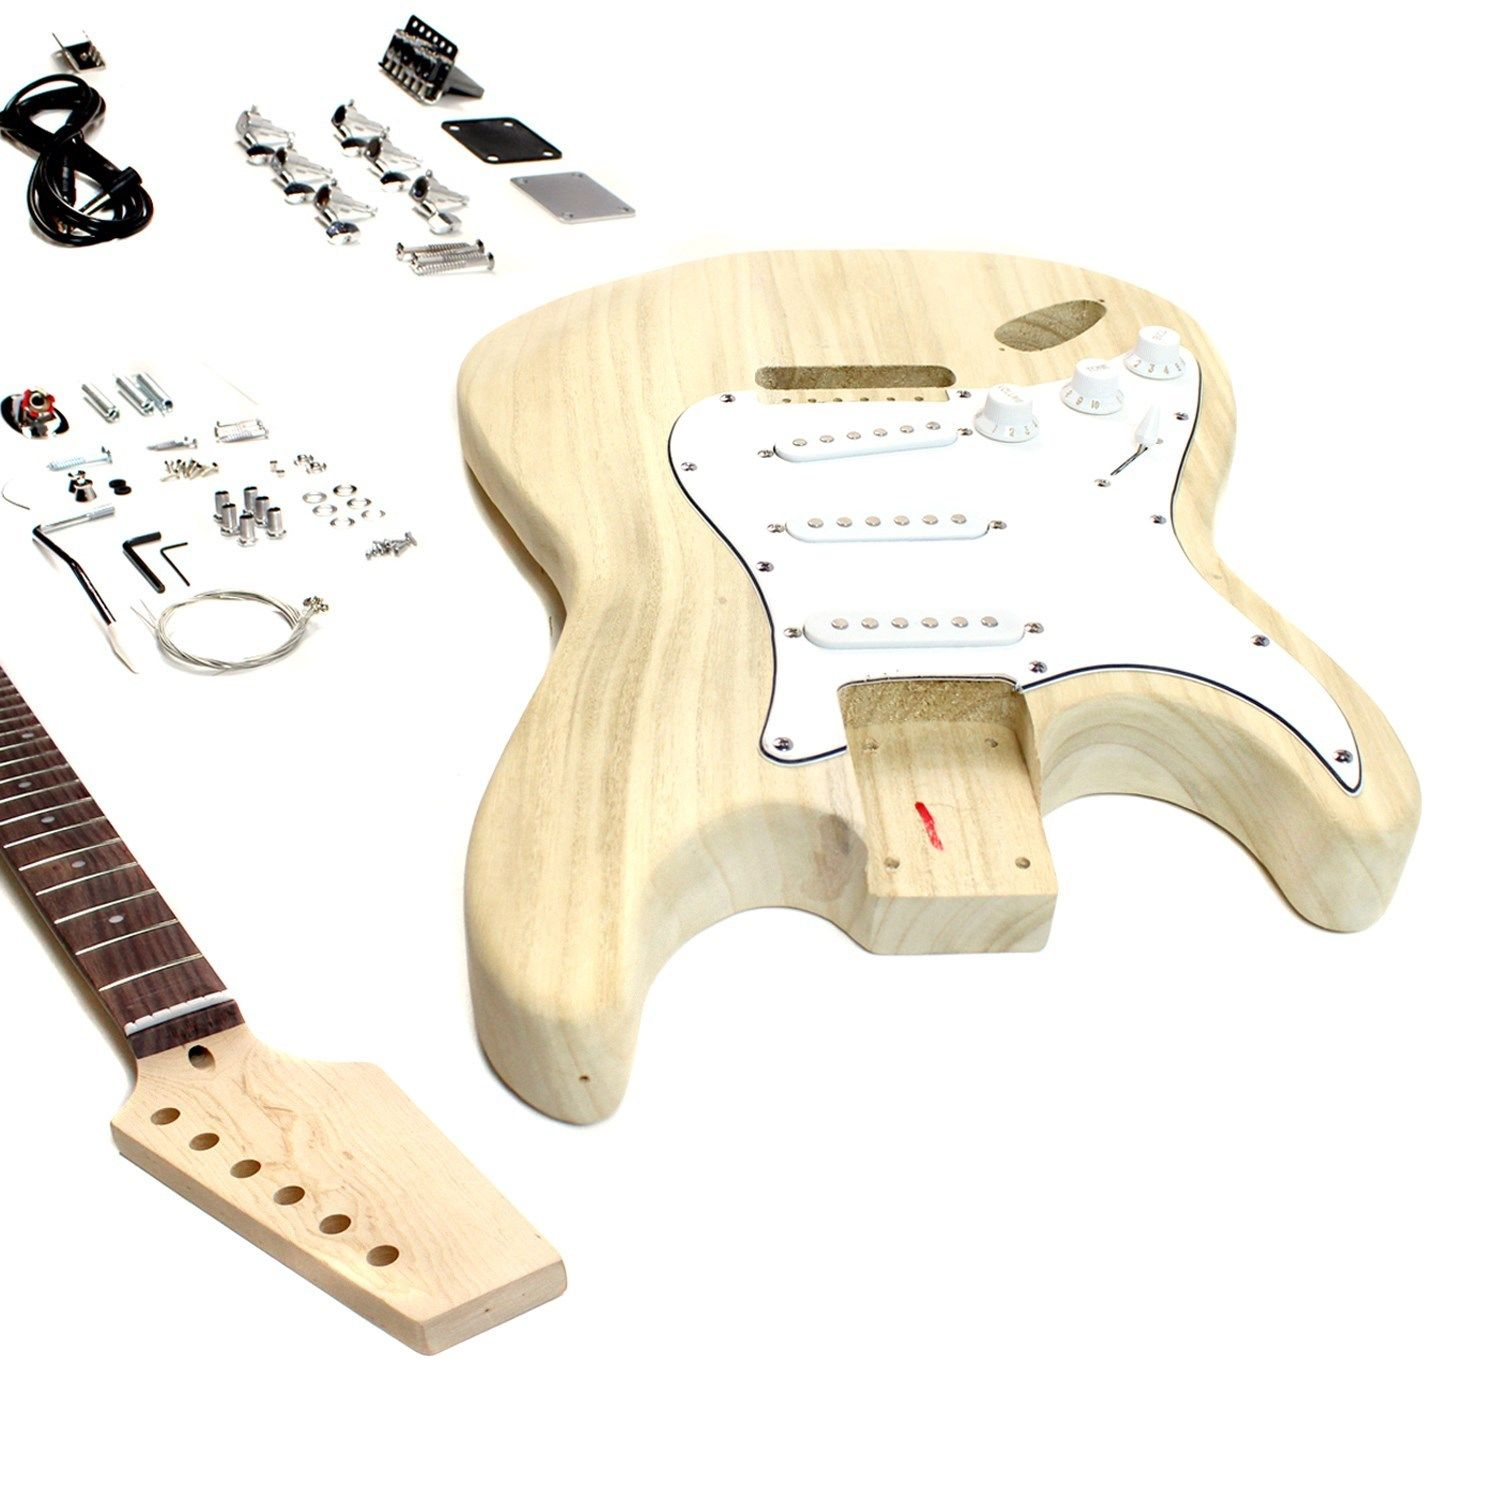 ST Left Hand Body Style – DIY Unfinished Project Luthier Electric Guitar Kit!